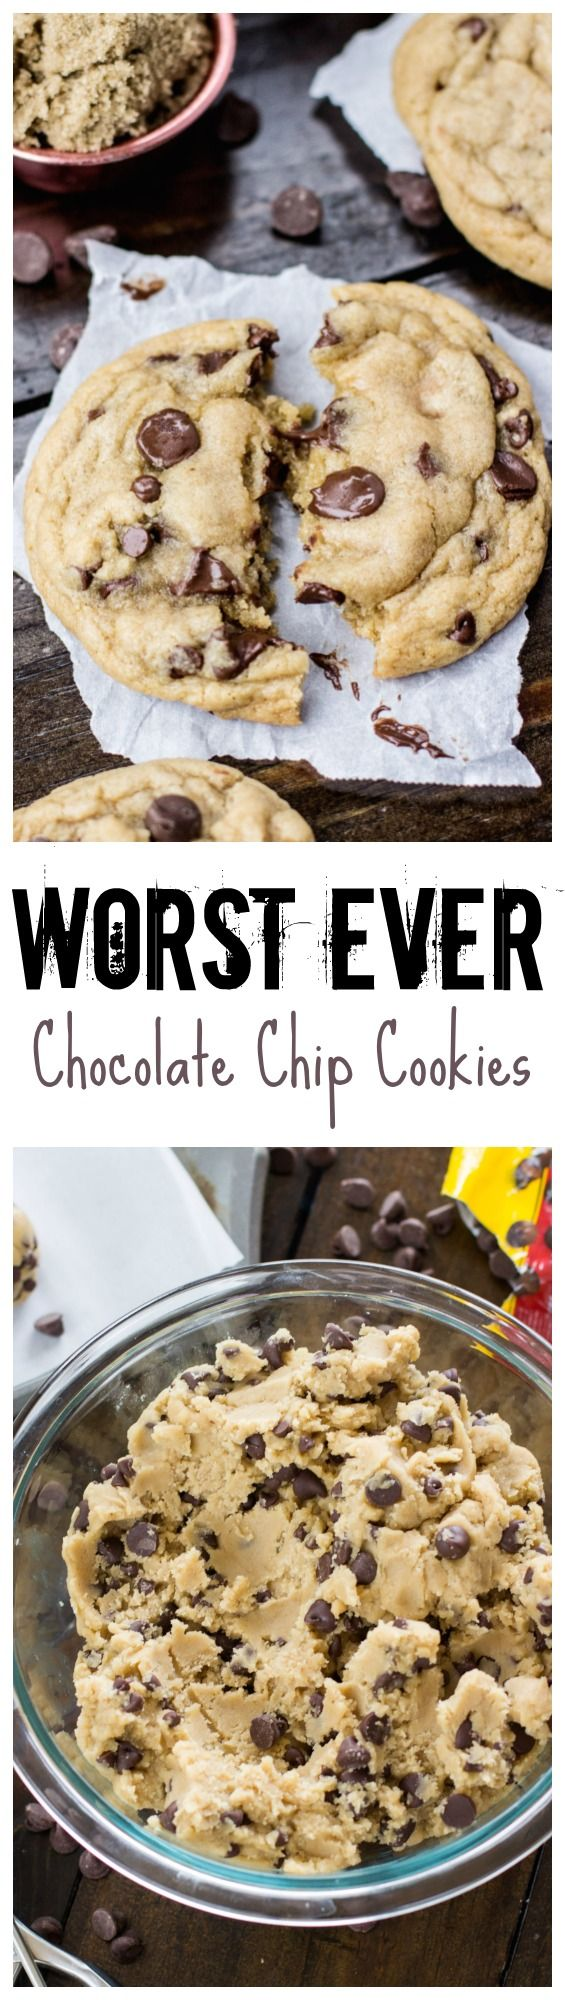 Can't wait to try this mouthwatering recipe for the worst chocolate chip cookies ever!